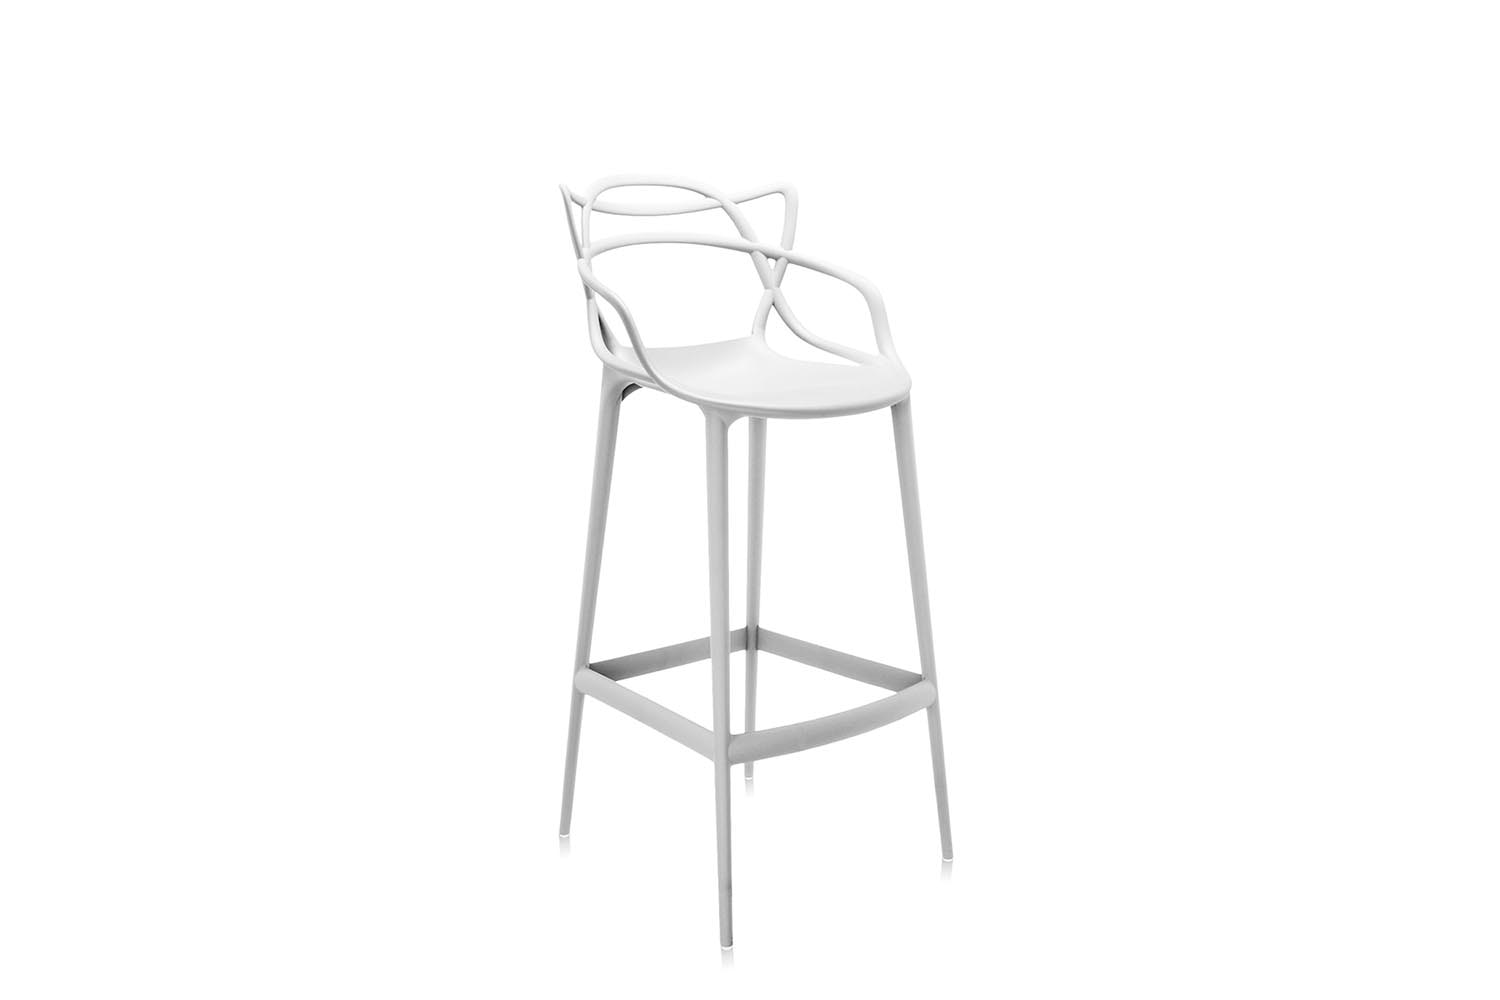 Bar Stools Stools Stool Kitchen Stools Bar Stool